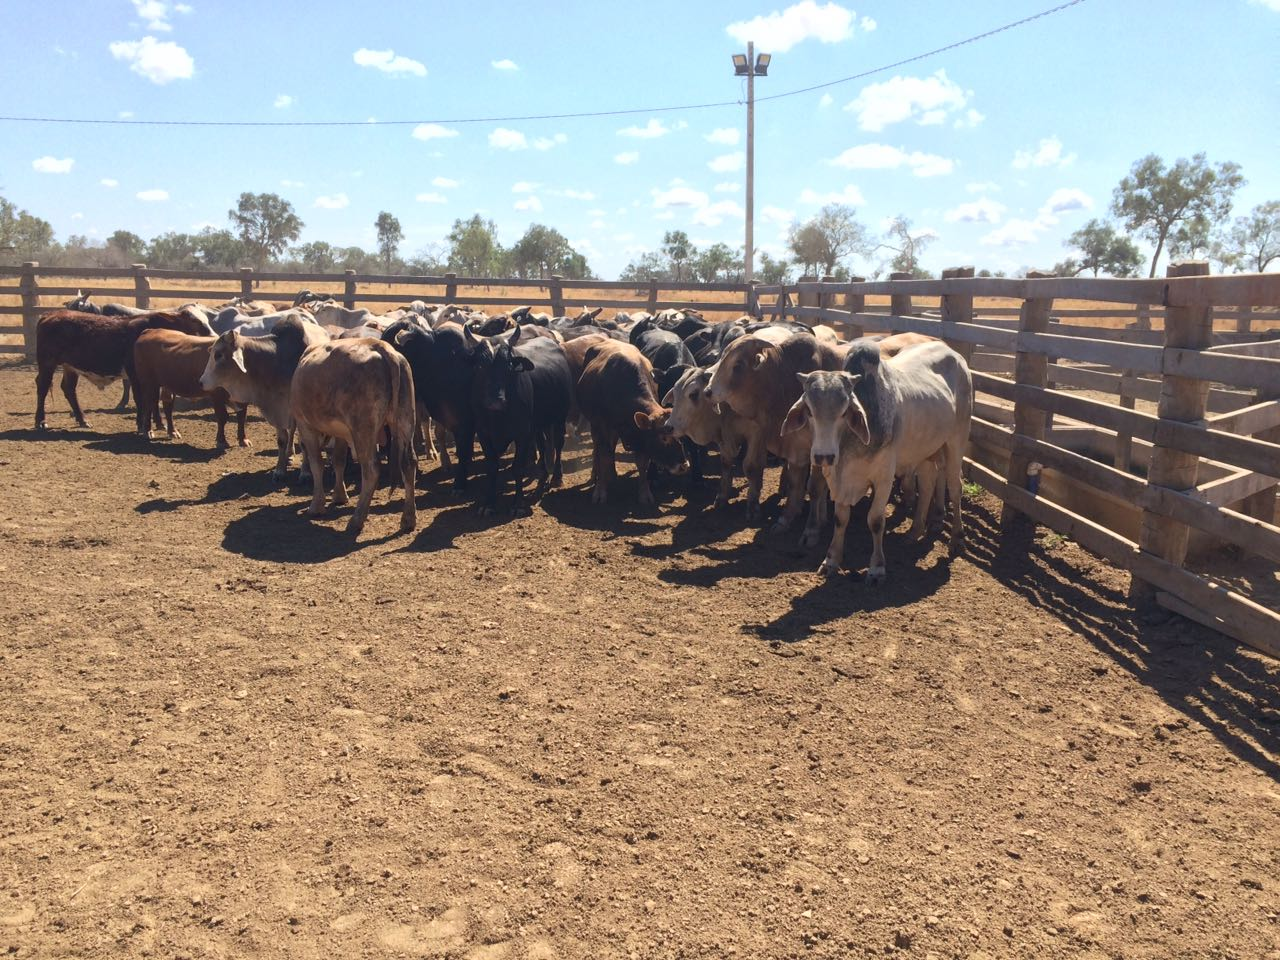 Paraguay cattle raising opportunity - cattle in field 2